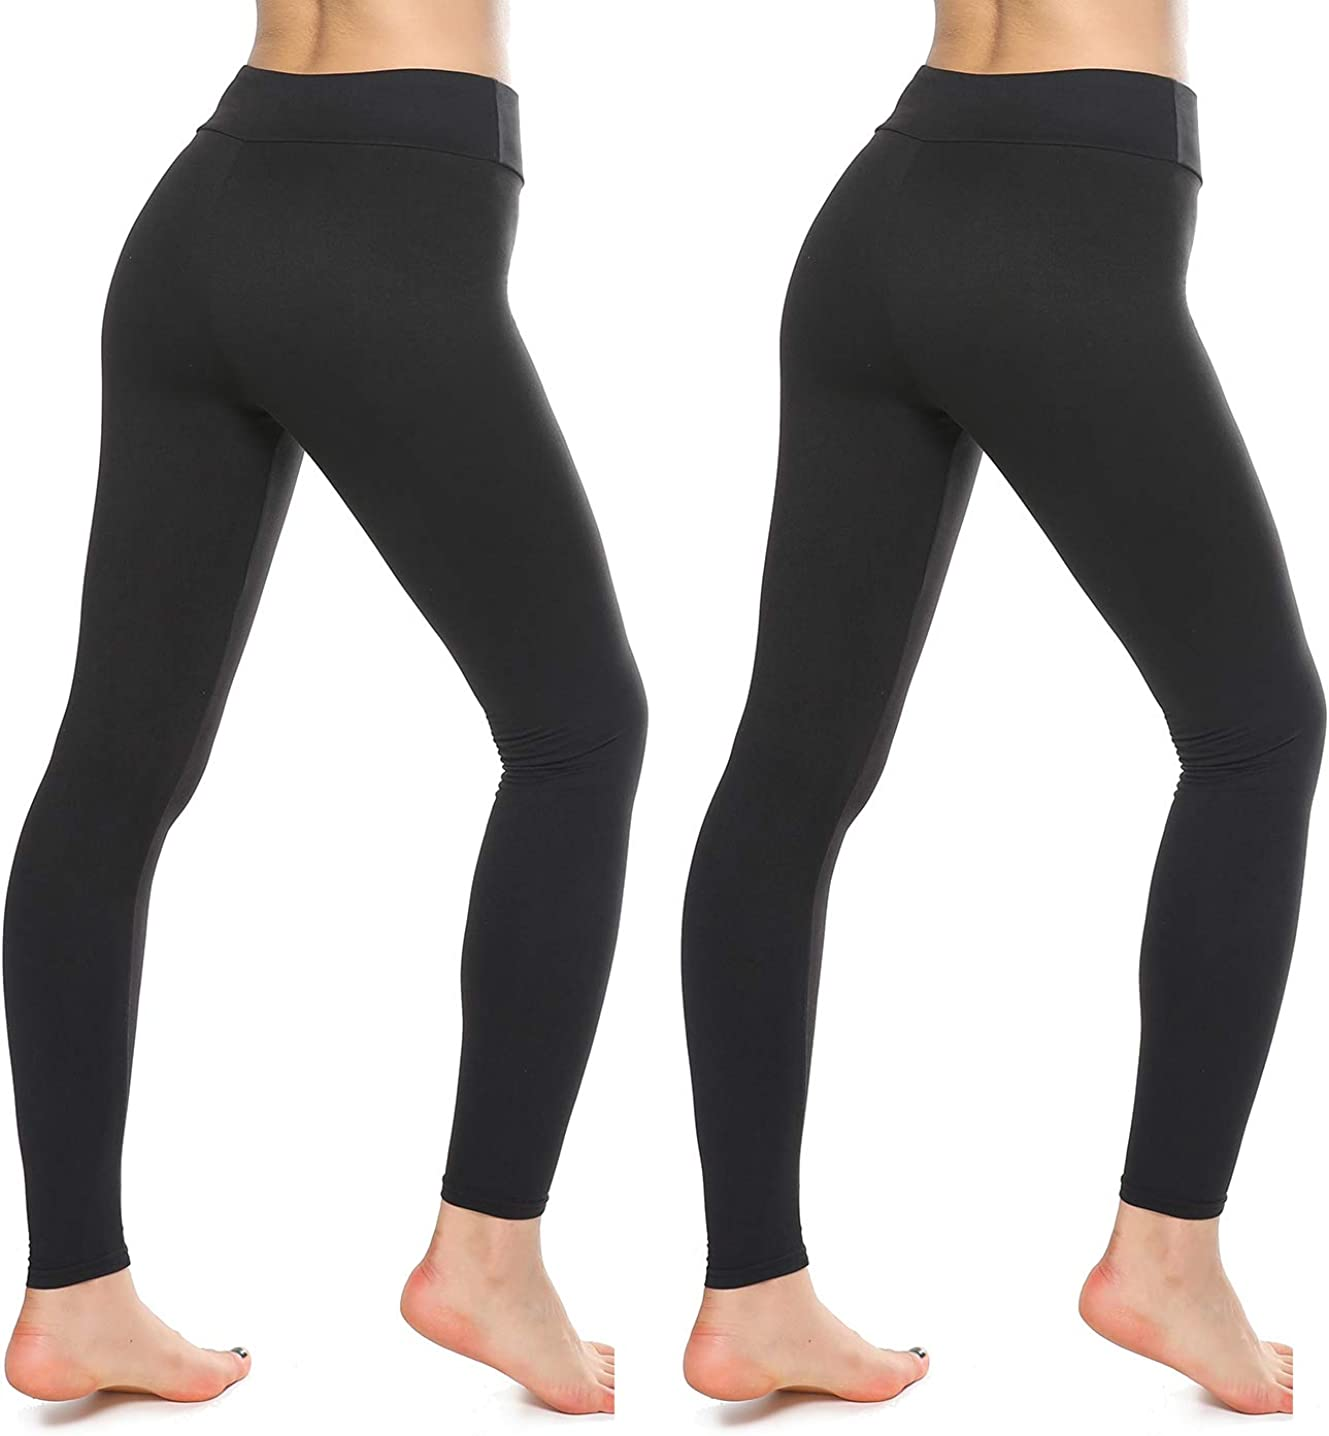 KT Buttery Soft Leggings for Women - High Waisted Leggings Pants with Pockets - Reg & Plus Size: Clothing